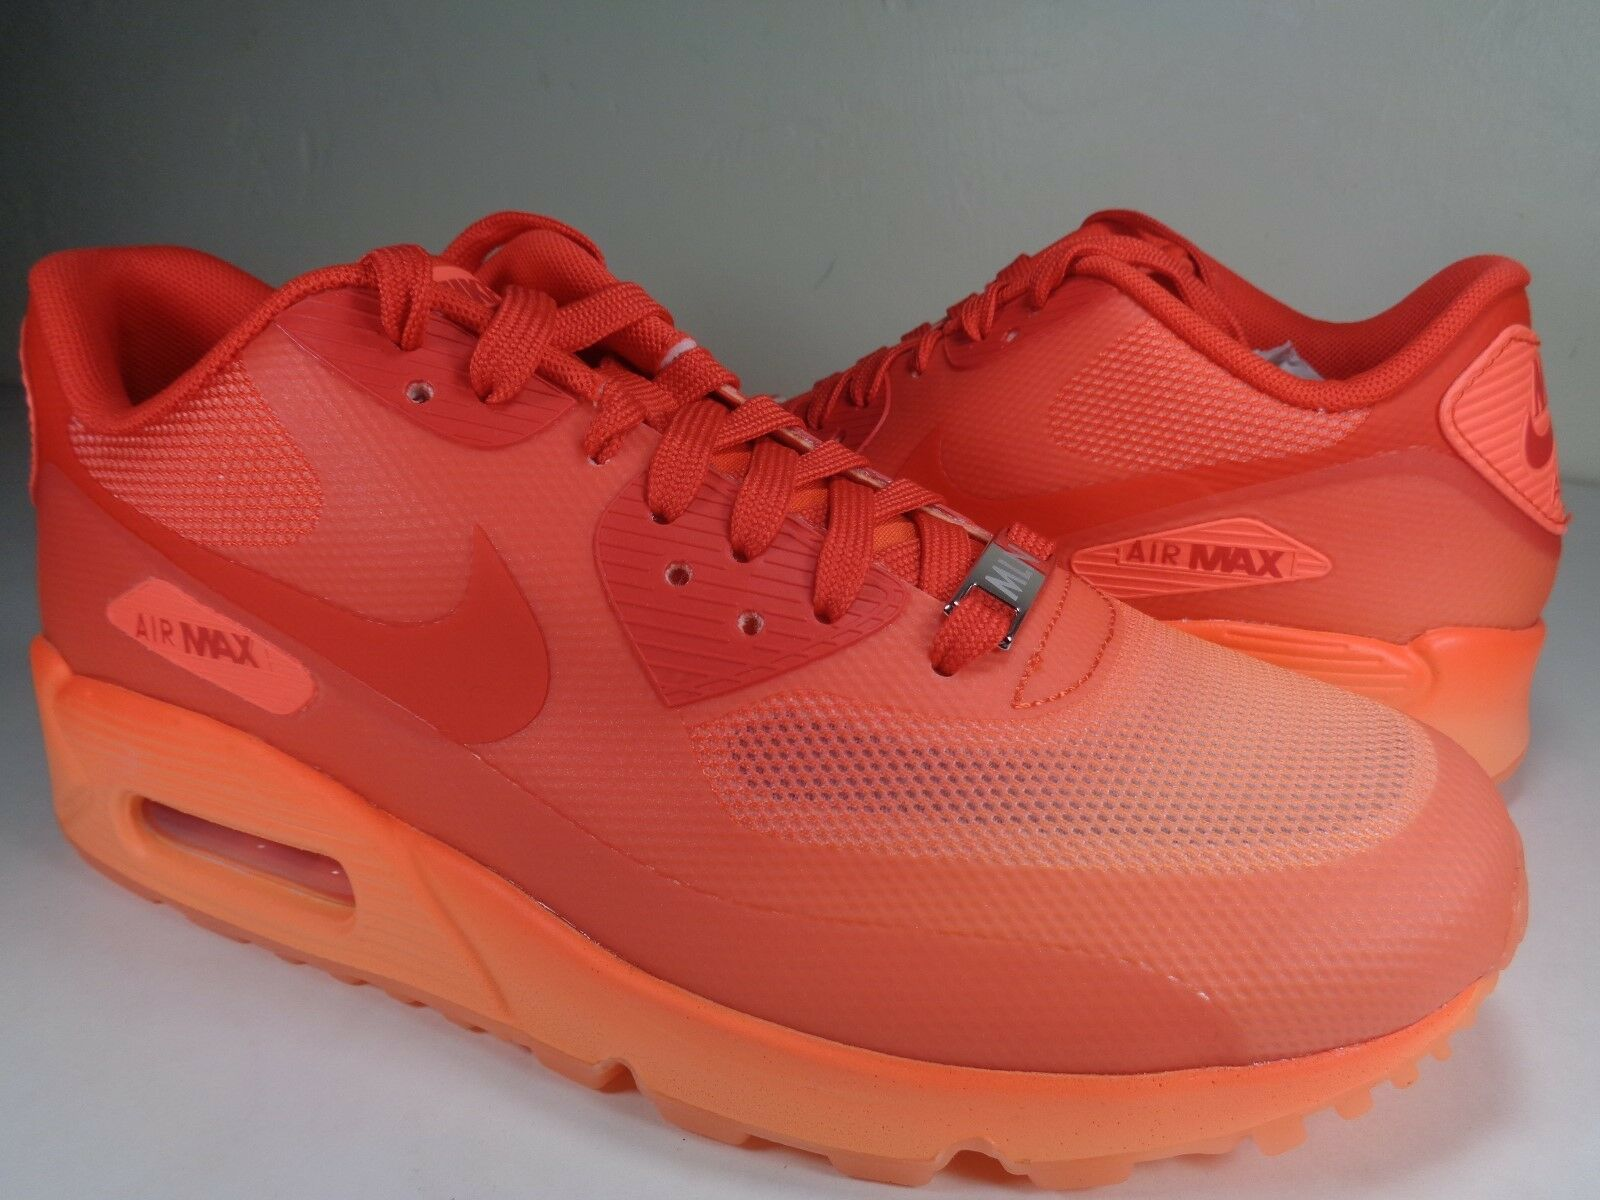 Womens Nike Air Max 90 HYP QS Milan Hyperfuse Hyper Orange Price reduction